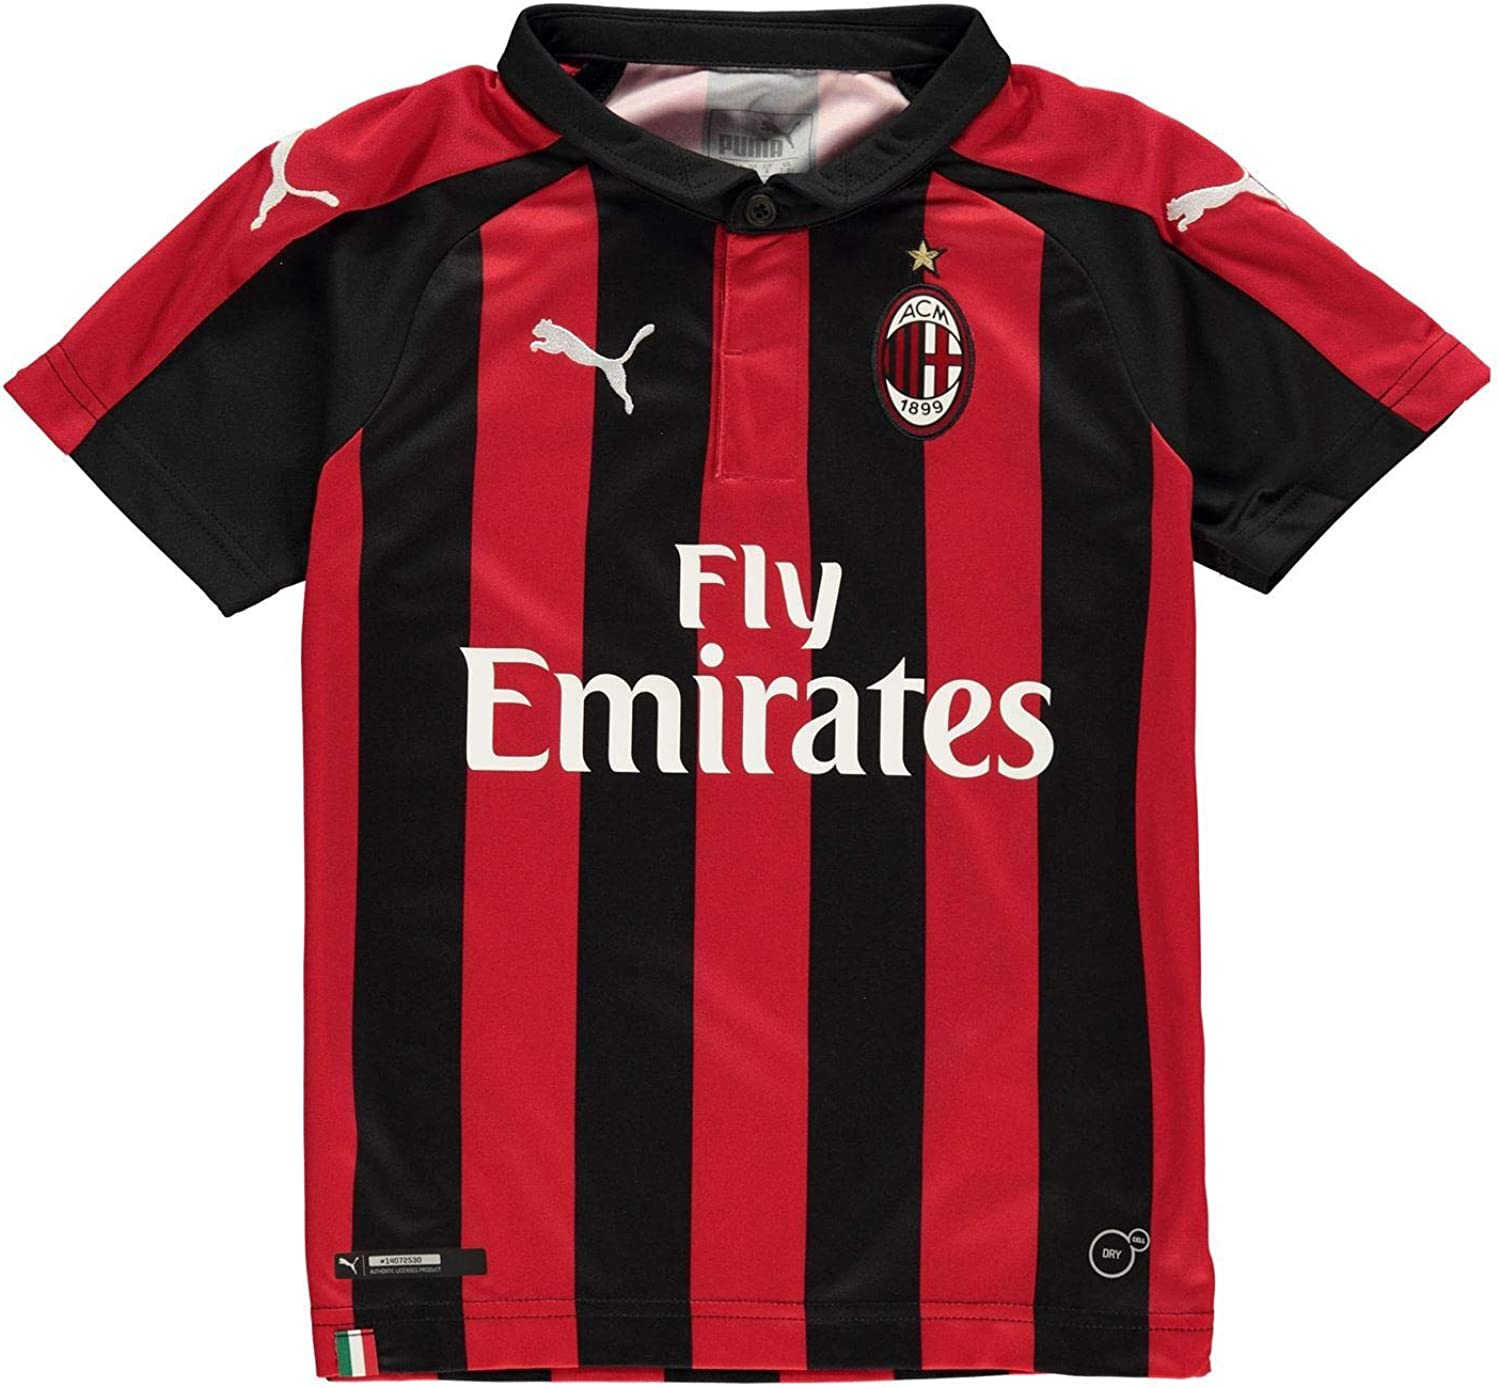 Puma AC Milan Home Jersey 2018 2019 Juniors Red Black Football Soccer Shirt Top